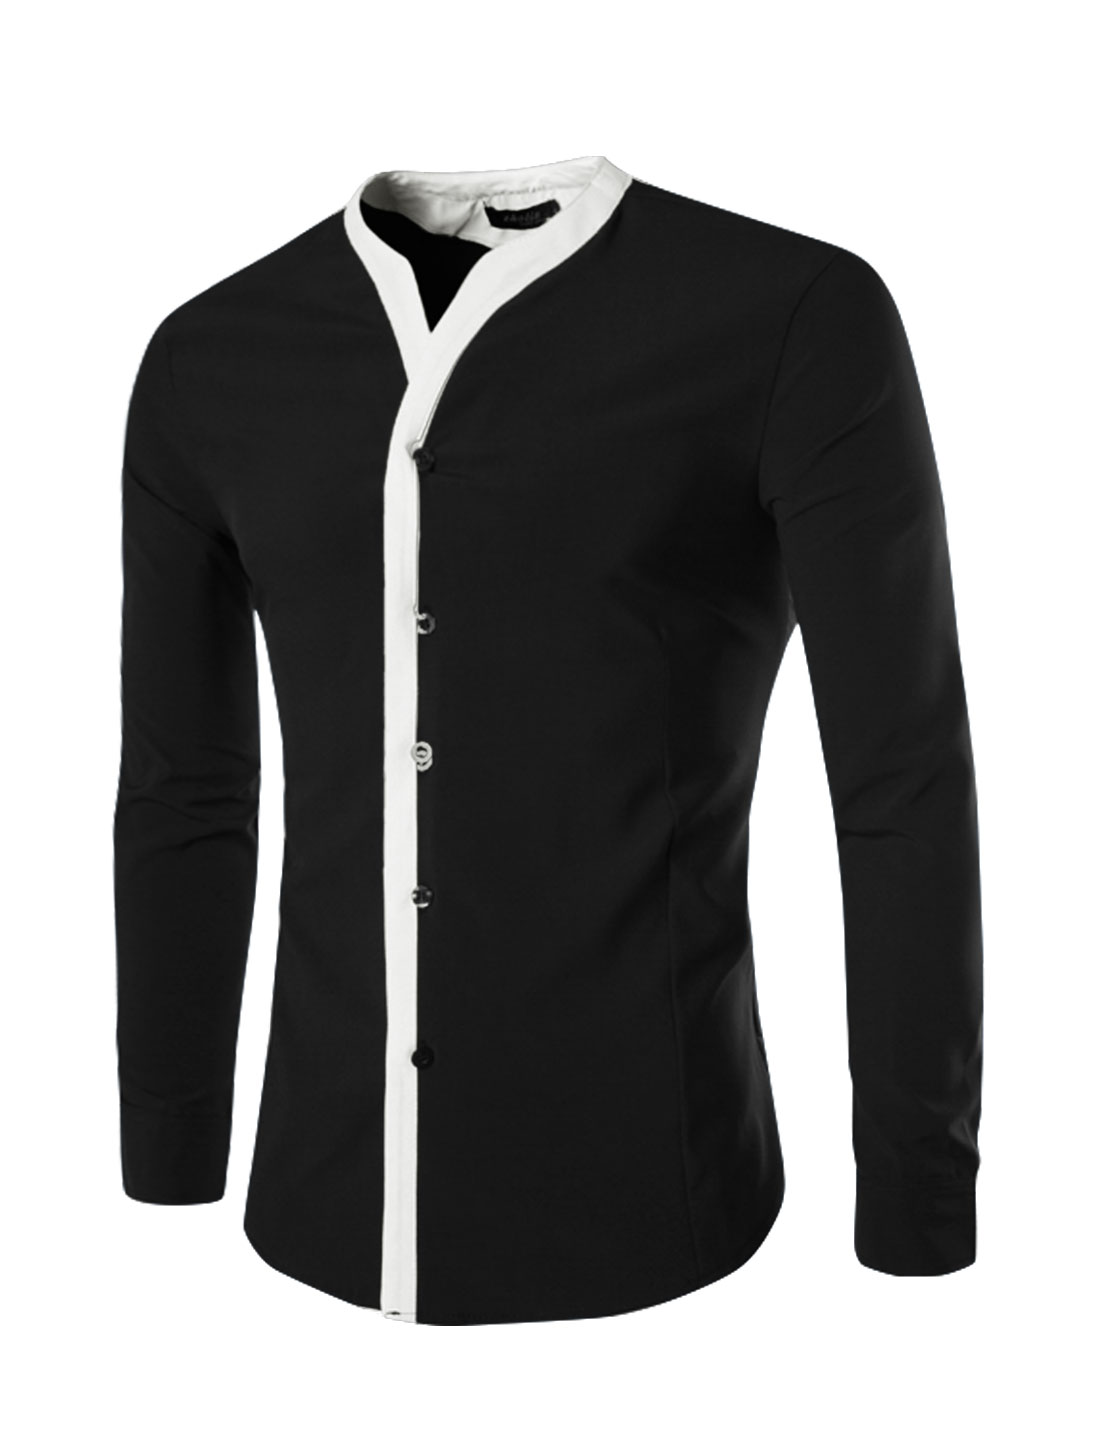 Men Long Sleeves V Neck Contrast Color Button Closure Shirt Black M